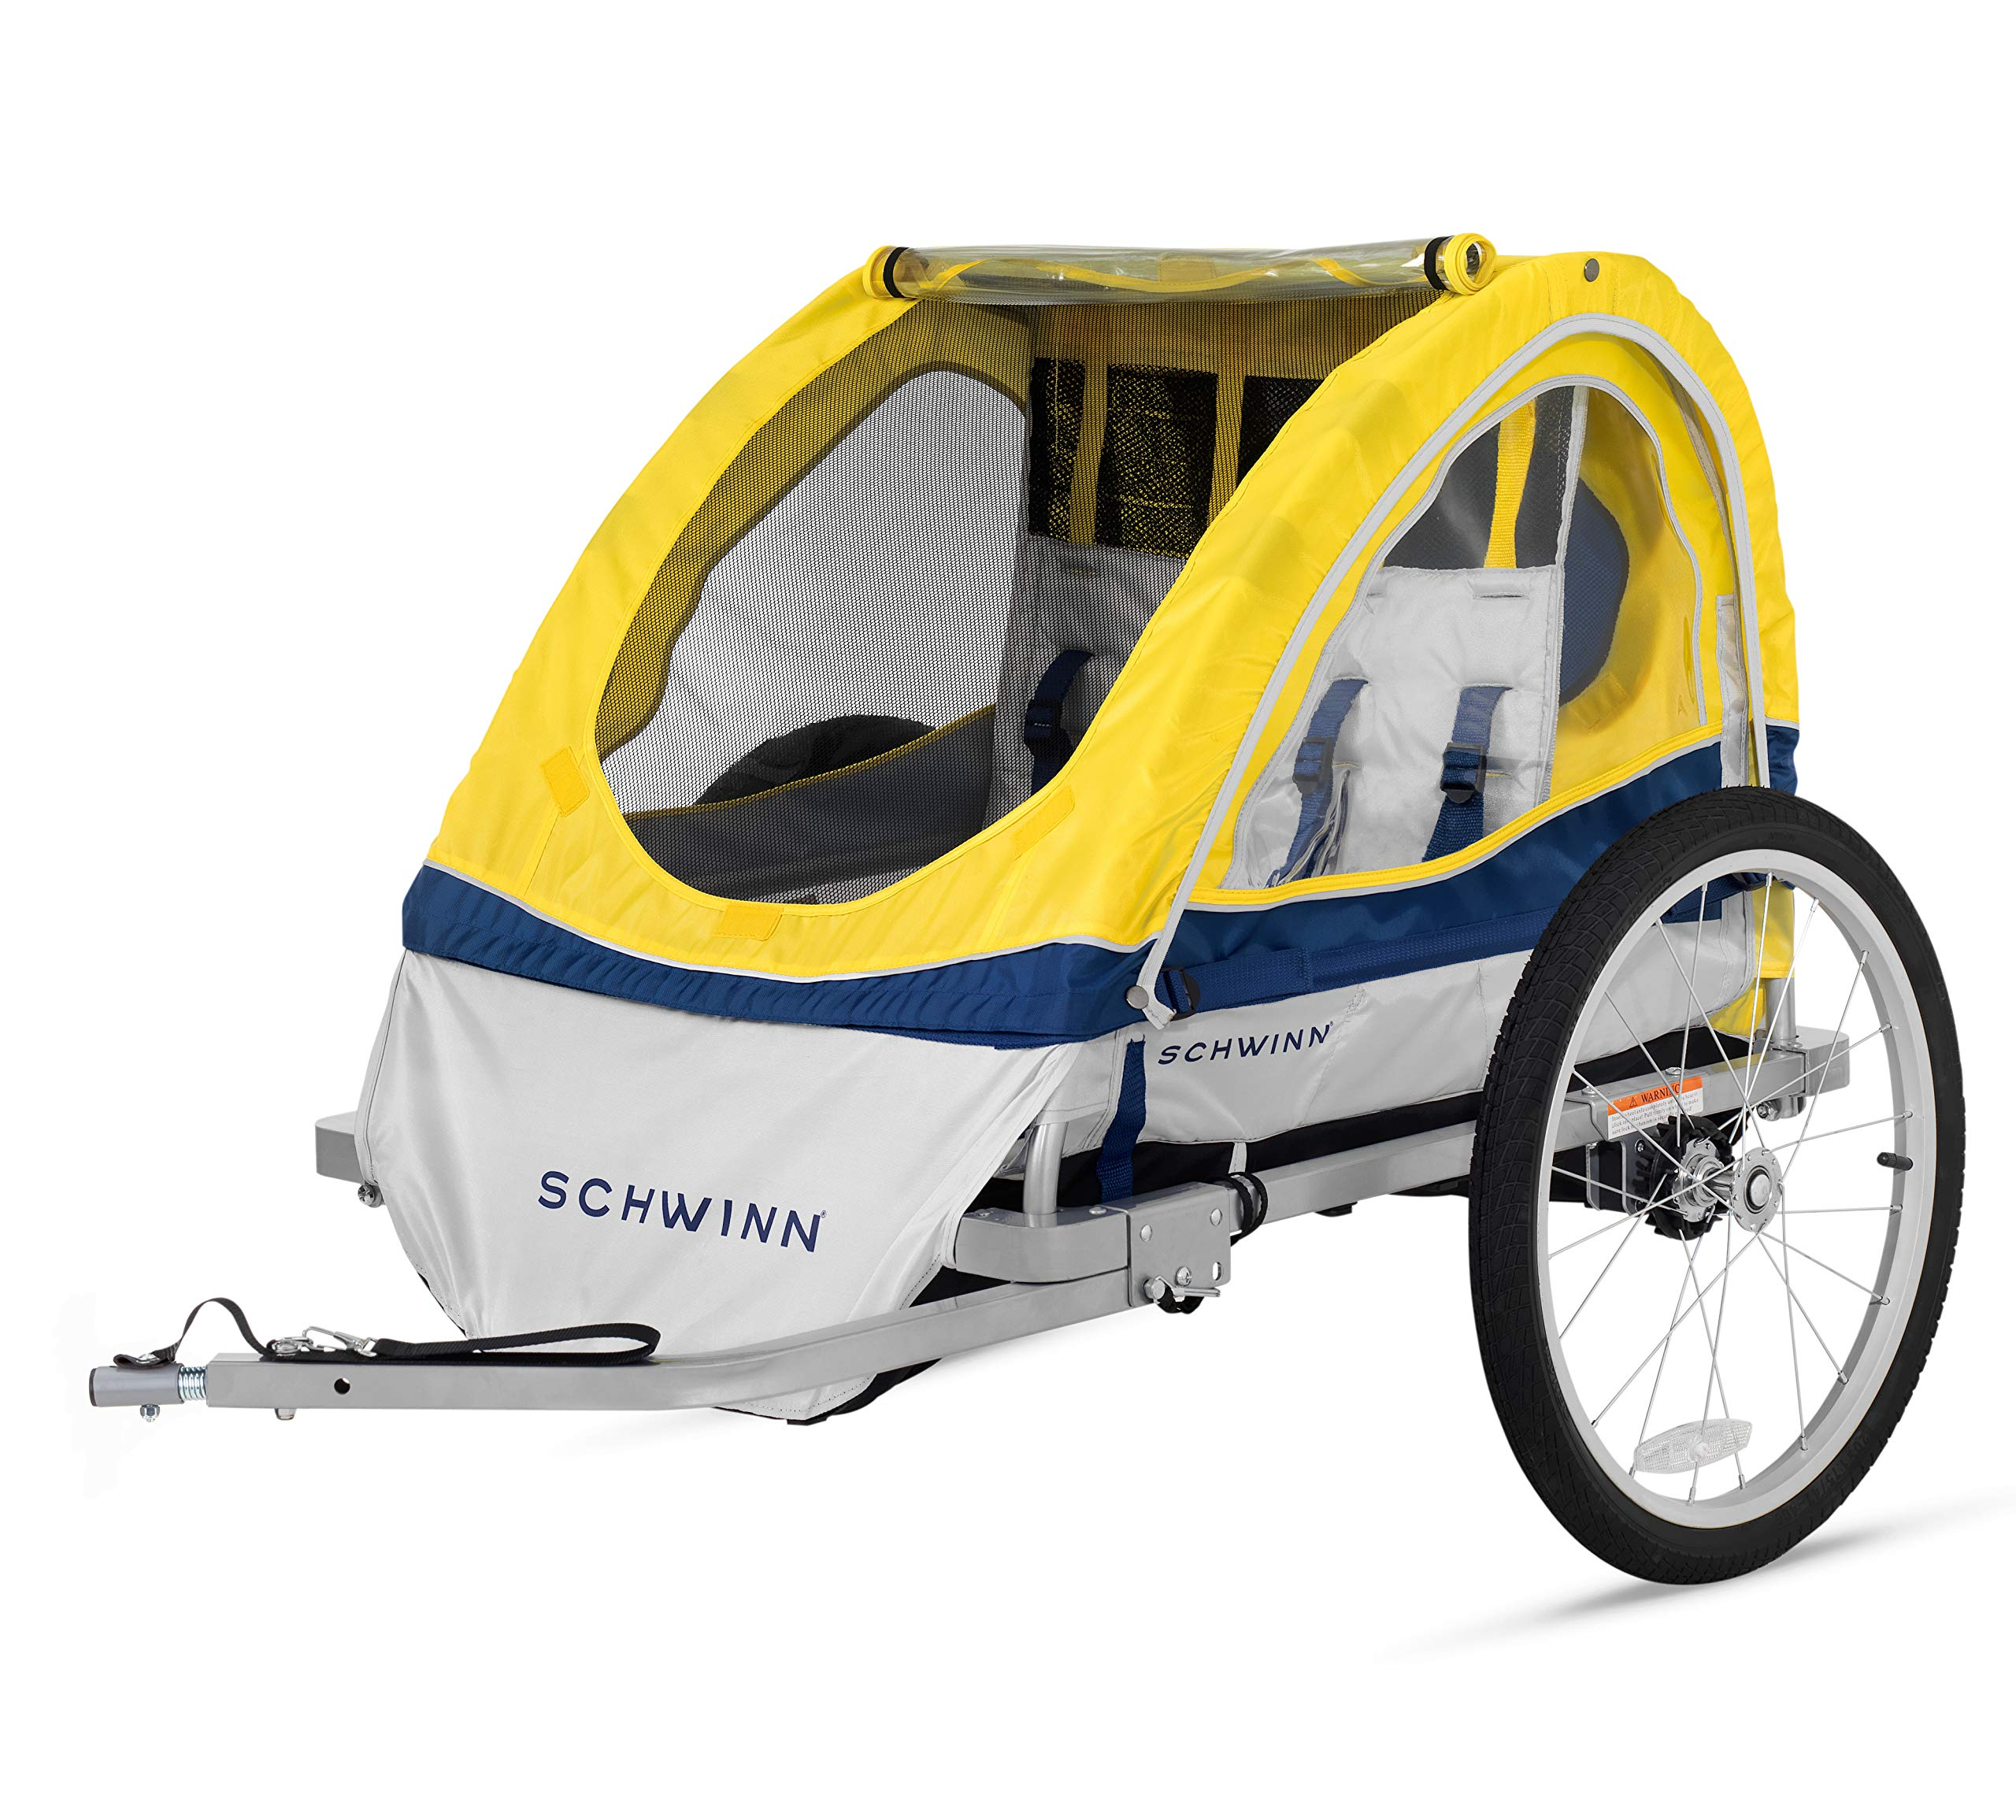 Schwinn Double Bicycle Trailer foldable